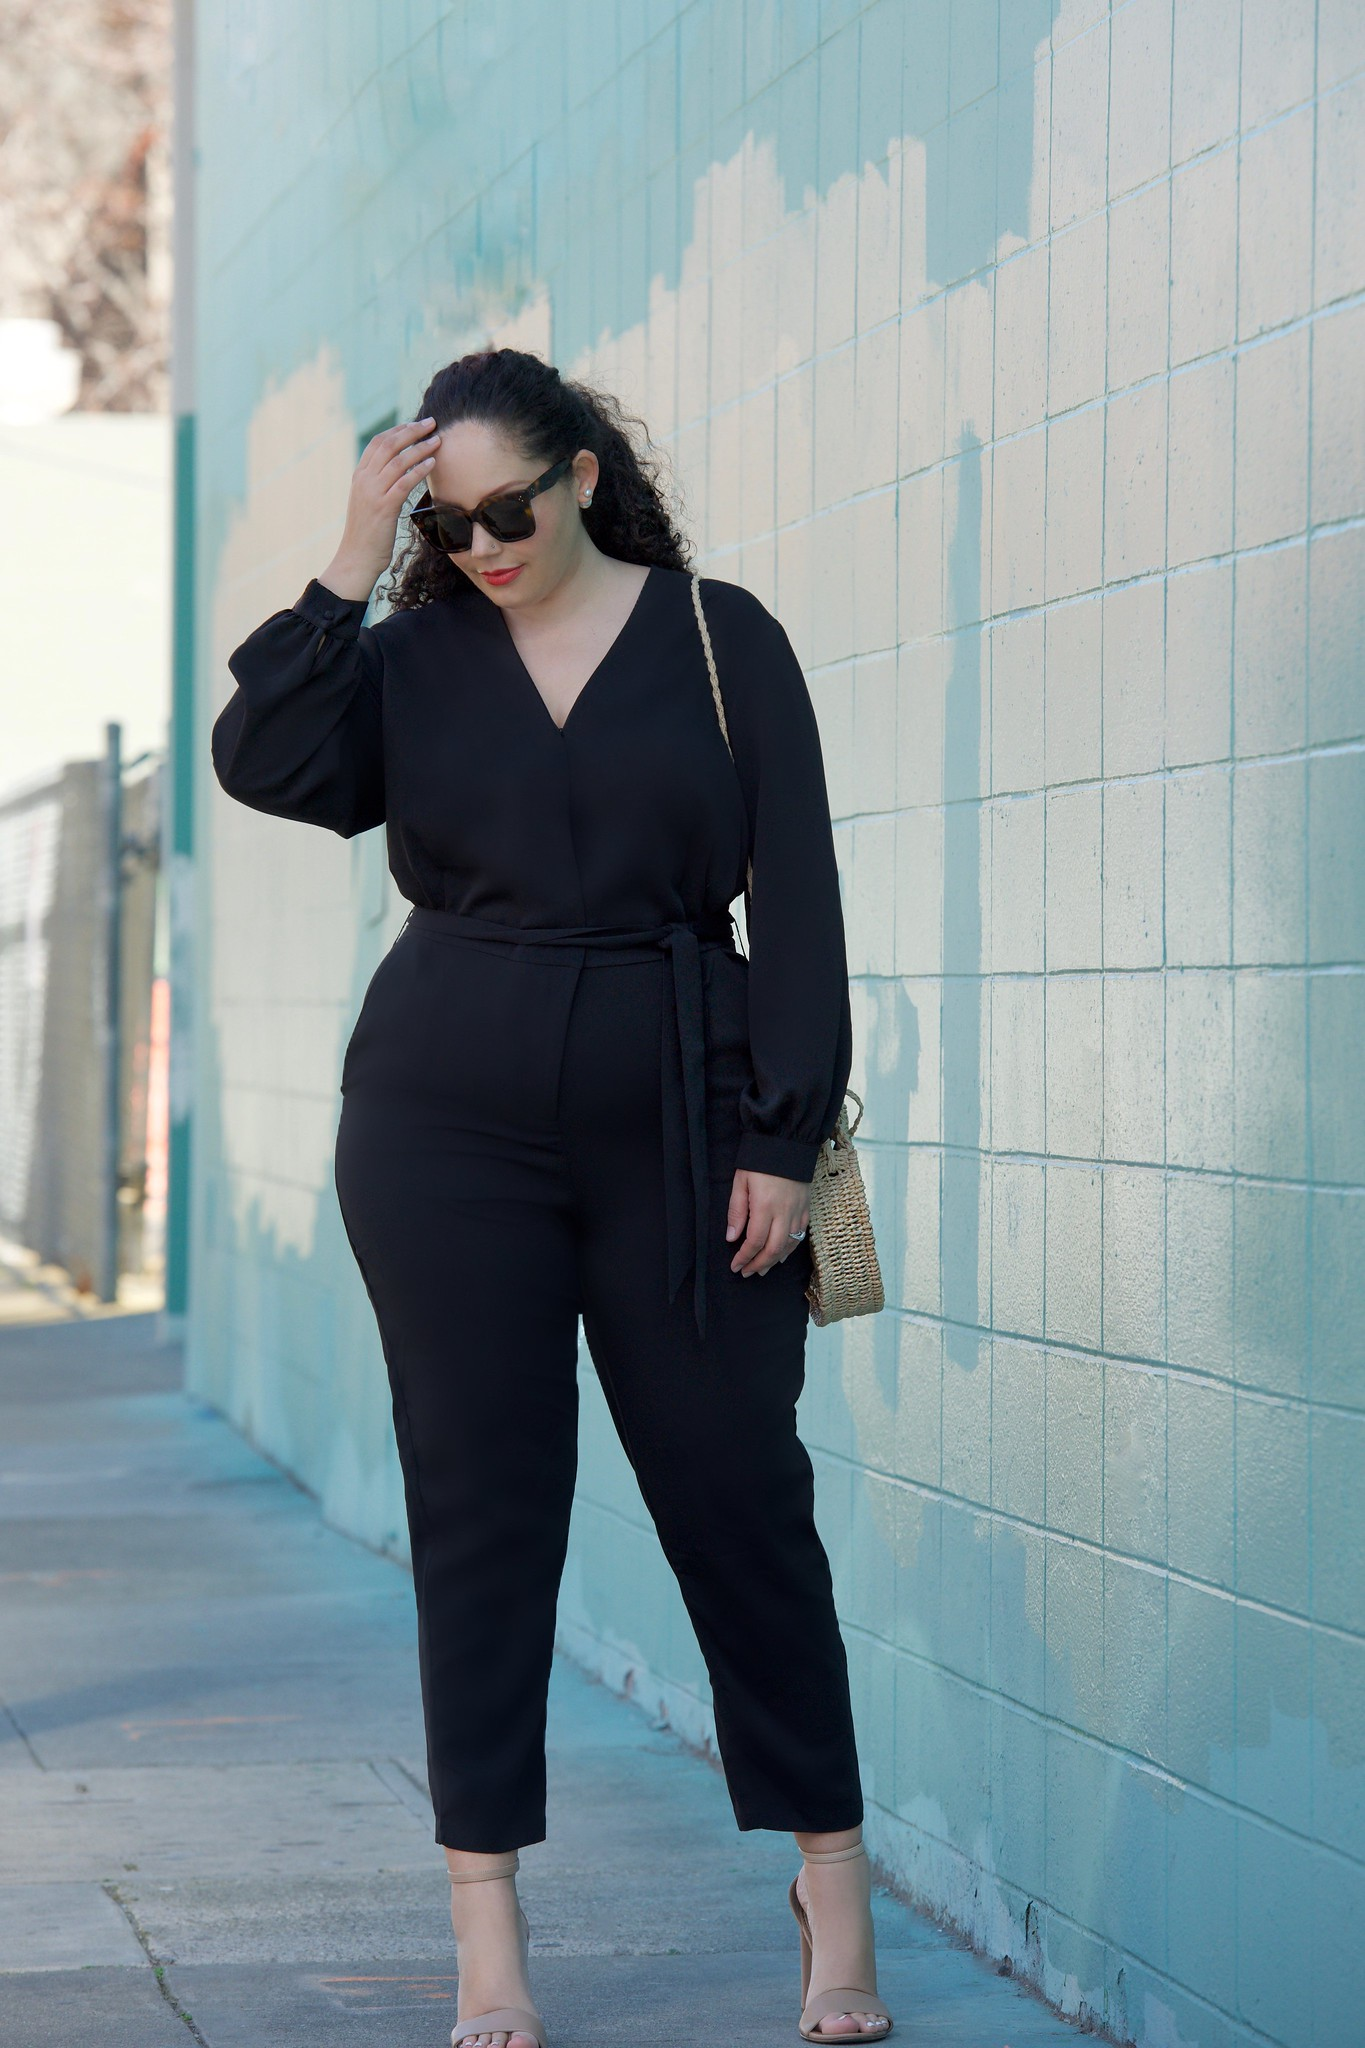 This $23 Jumpsuit Looks Amazing on Curves via Girl With Curves #curvyfashion #plussize #bodypositive